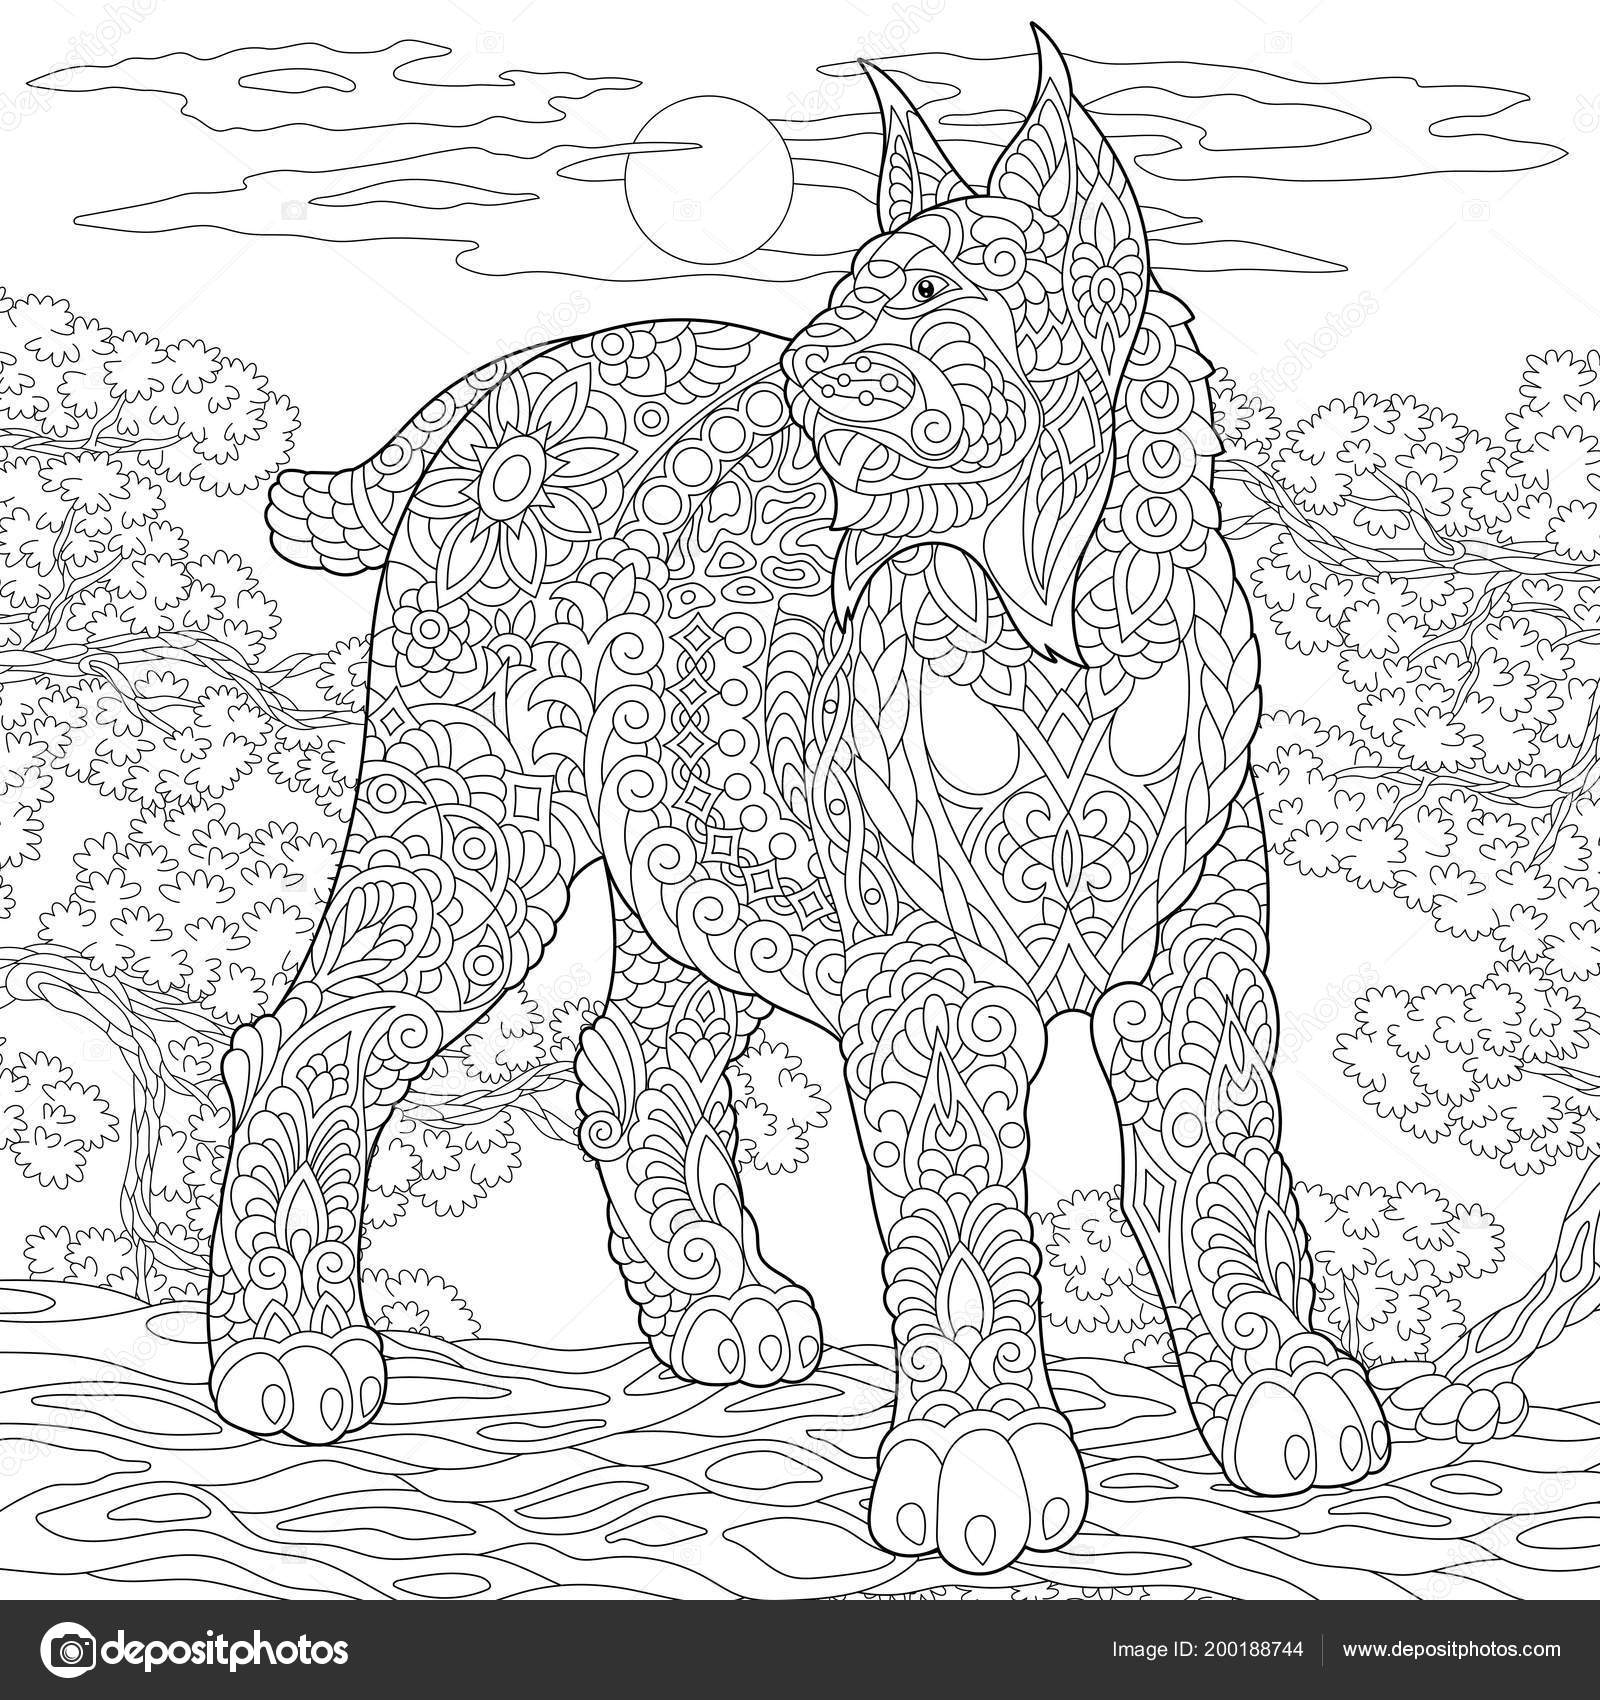 Wildcat Coloring Page Colouring Picture Adult Coloring Book Idea ...